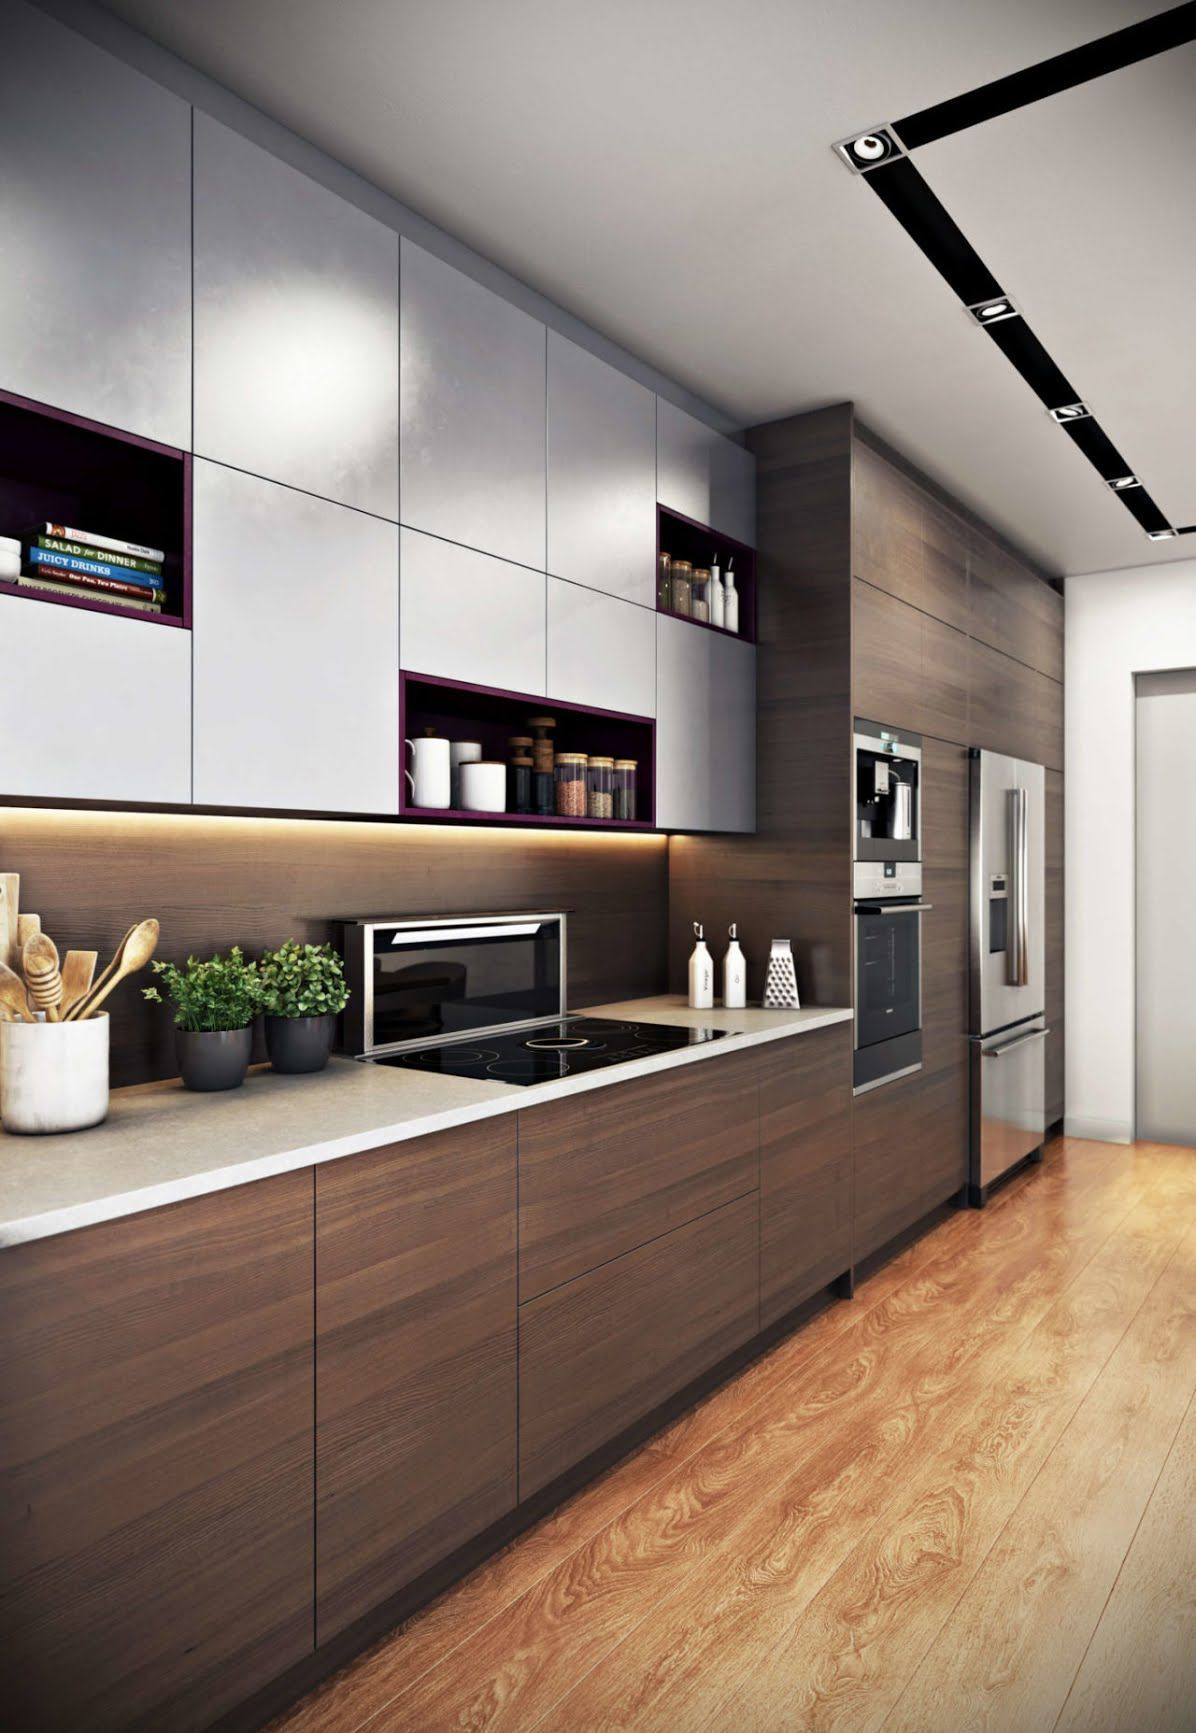 Home Interior Design Kitchen for Ultimate Sophistication The